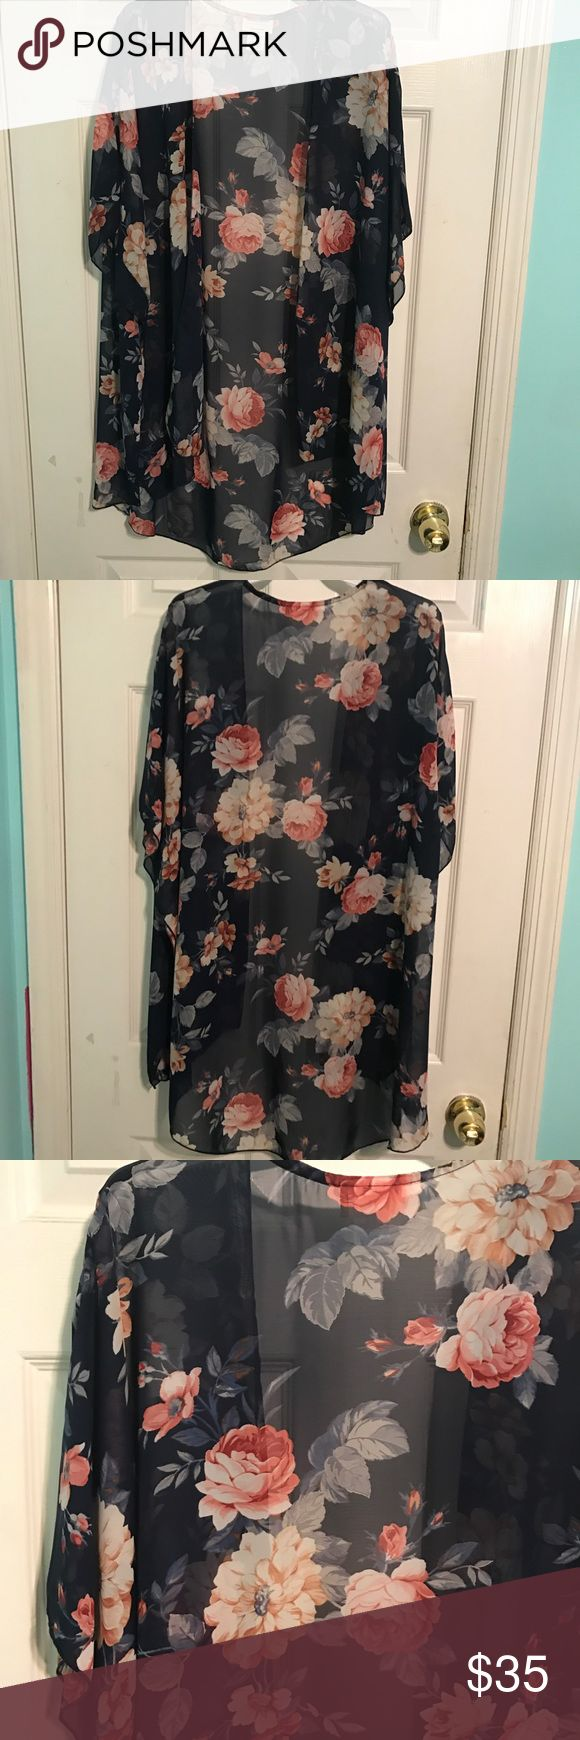 Women's floral kimono cardigan NEW Great to wear to the beach as a cover up or to throw on over a tank. Sheer Emory Park Swim Coverups